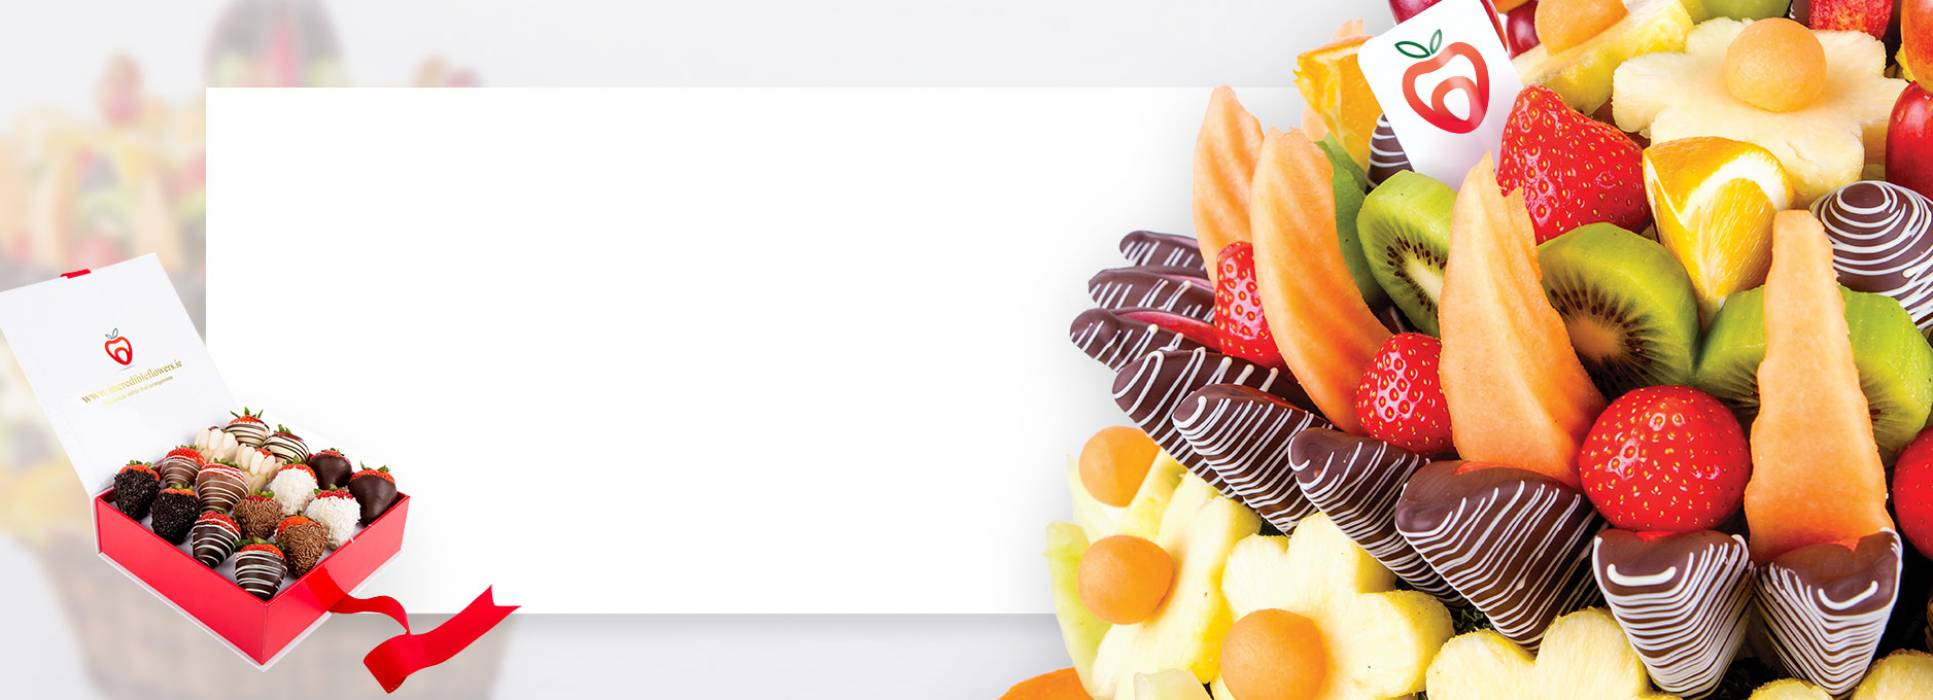 Brimming with the highest quality edibles, our gourmet gift baskets filled with the best sweet and savory selections are sure to please any palette.